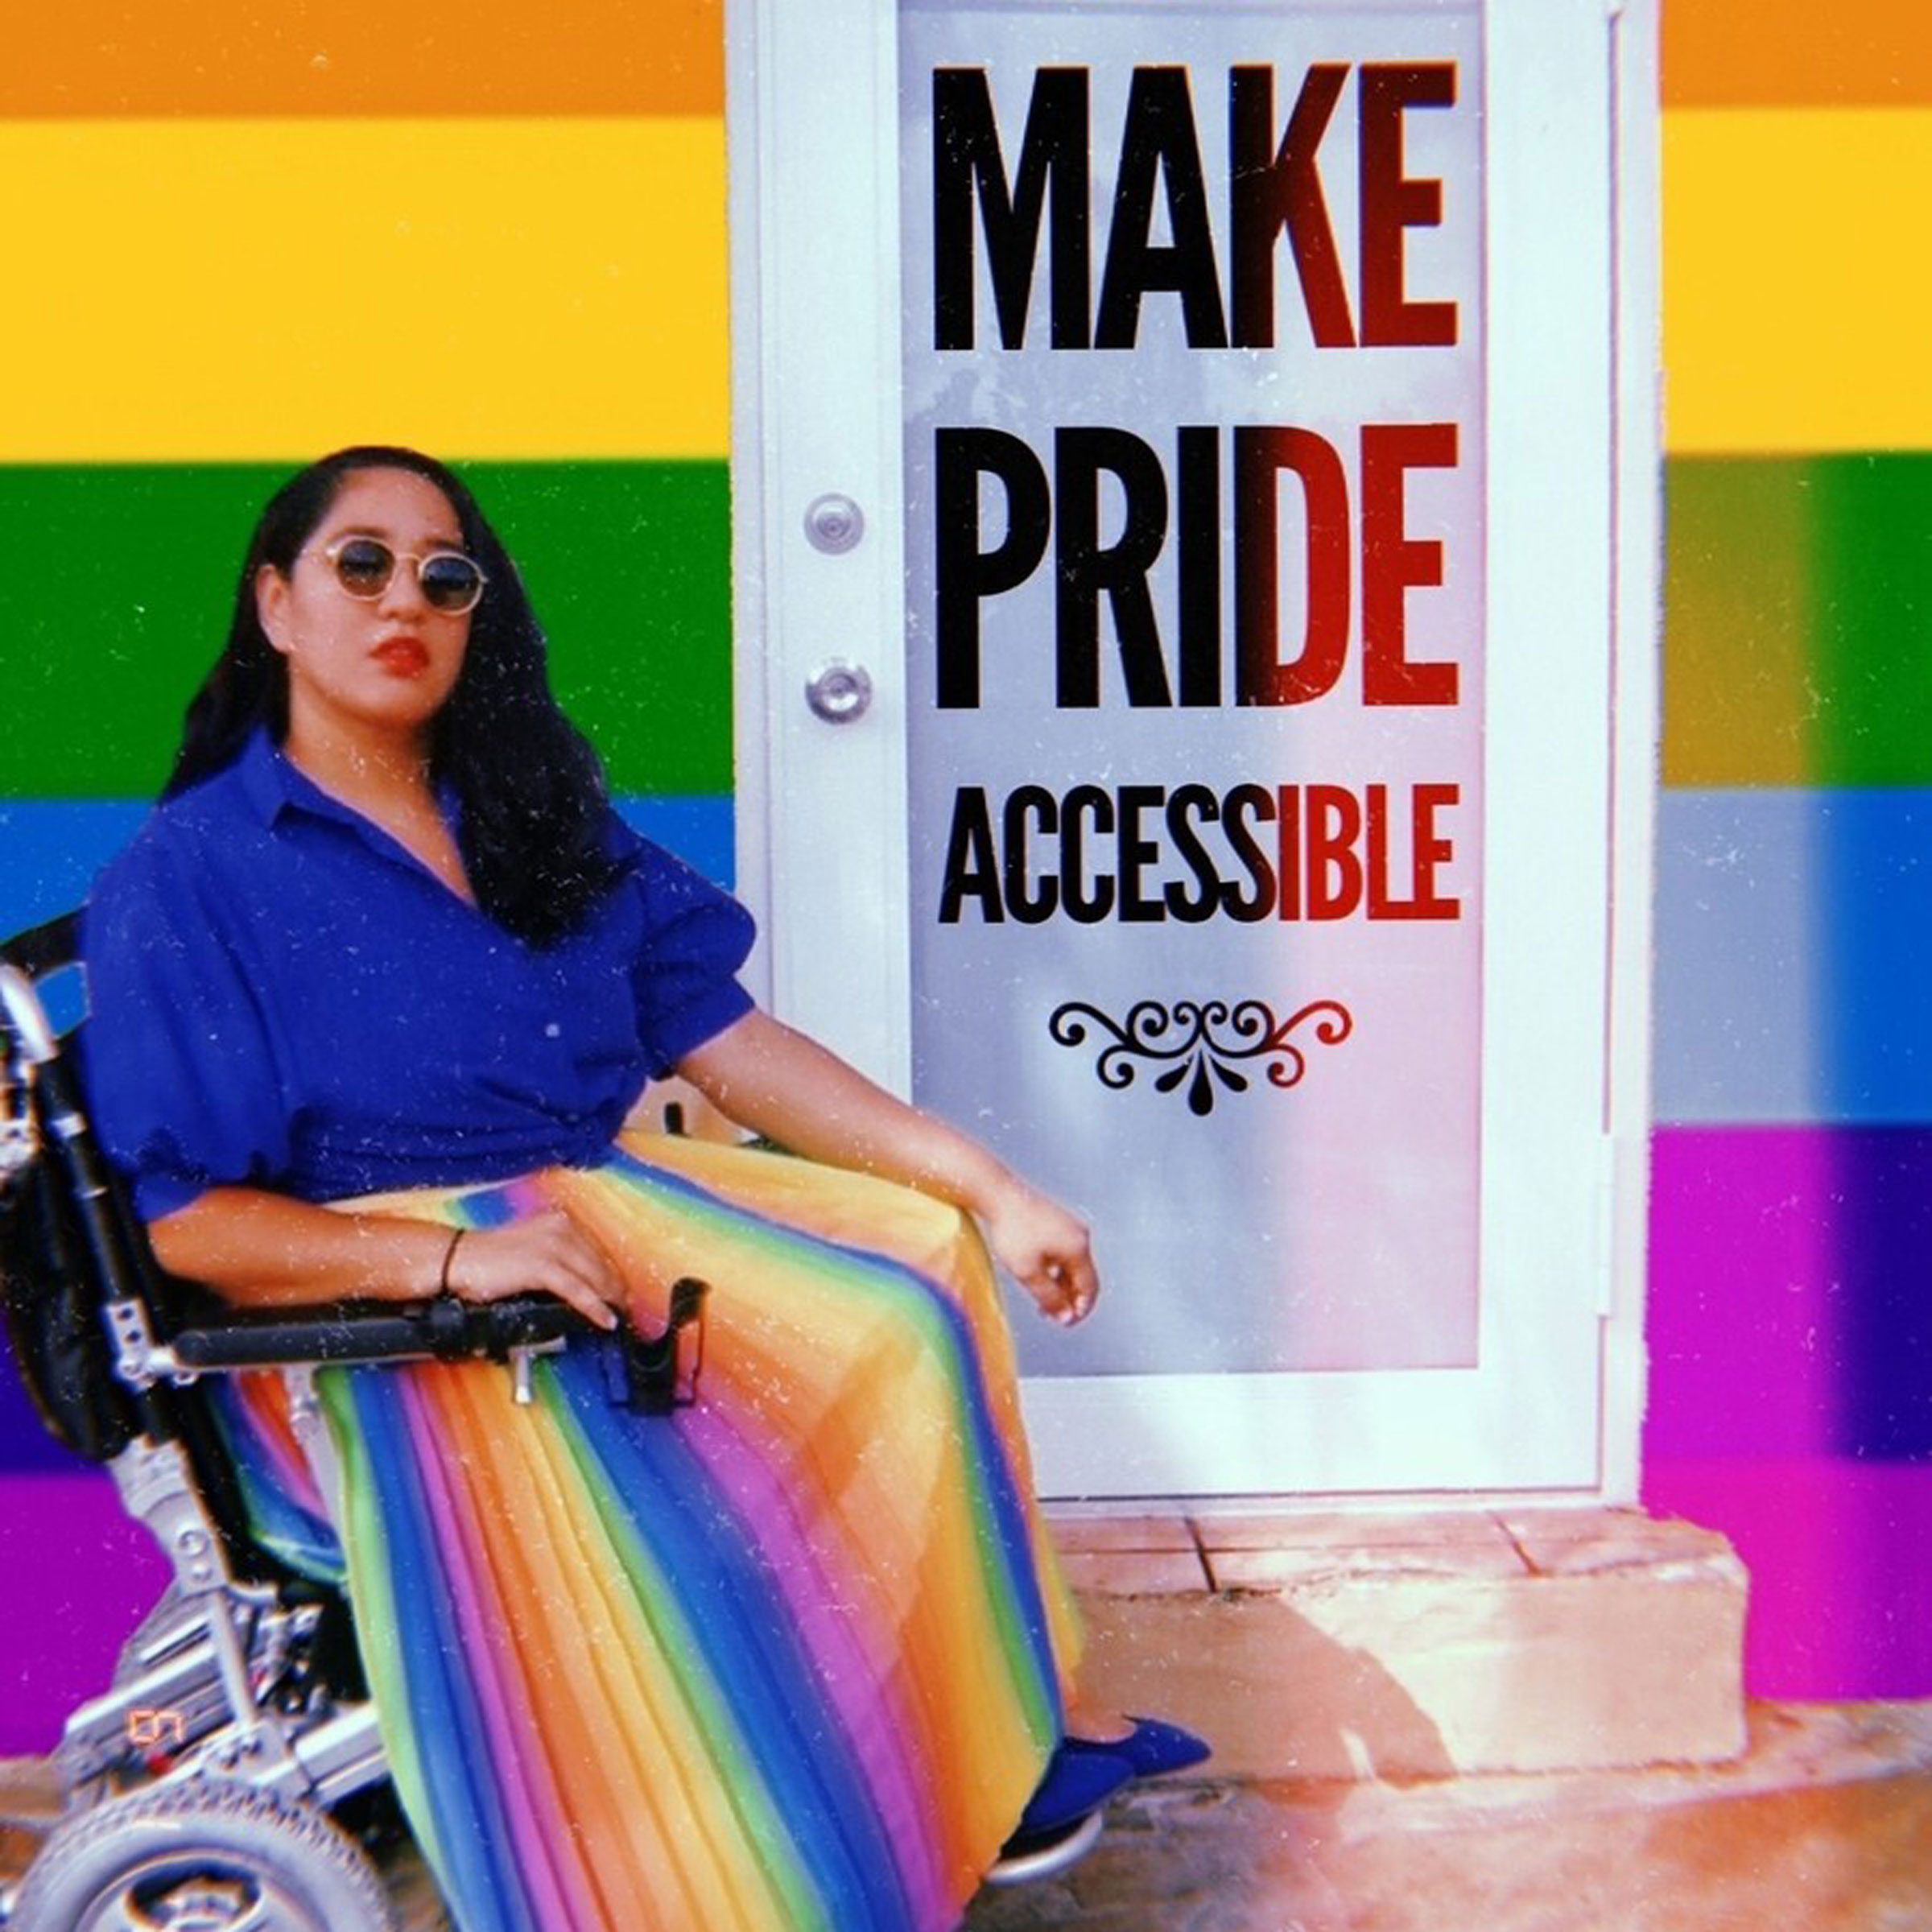 """Photo of Annie Segarra, an American YouTuber, artist, and activist for LGBTQ and disability rights, in a wheelchair wearing a rainbow skirt next to a doorstep and door that reads Make Pride Accessible"""""""